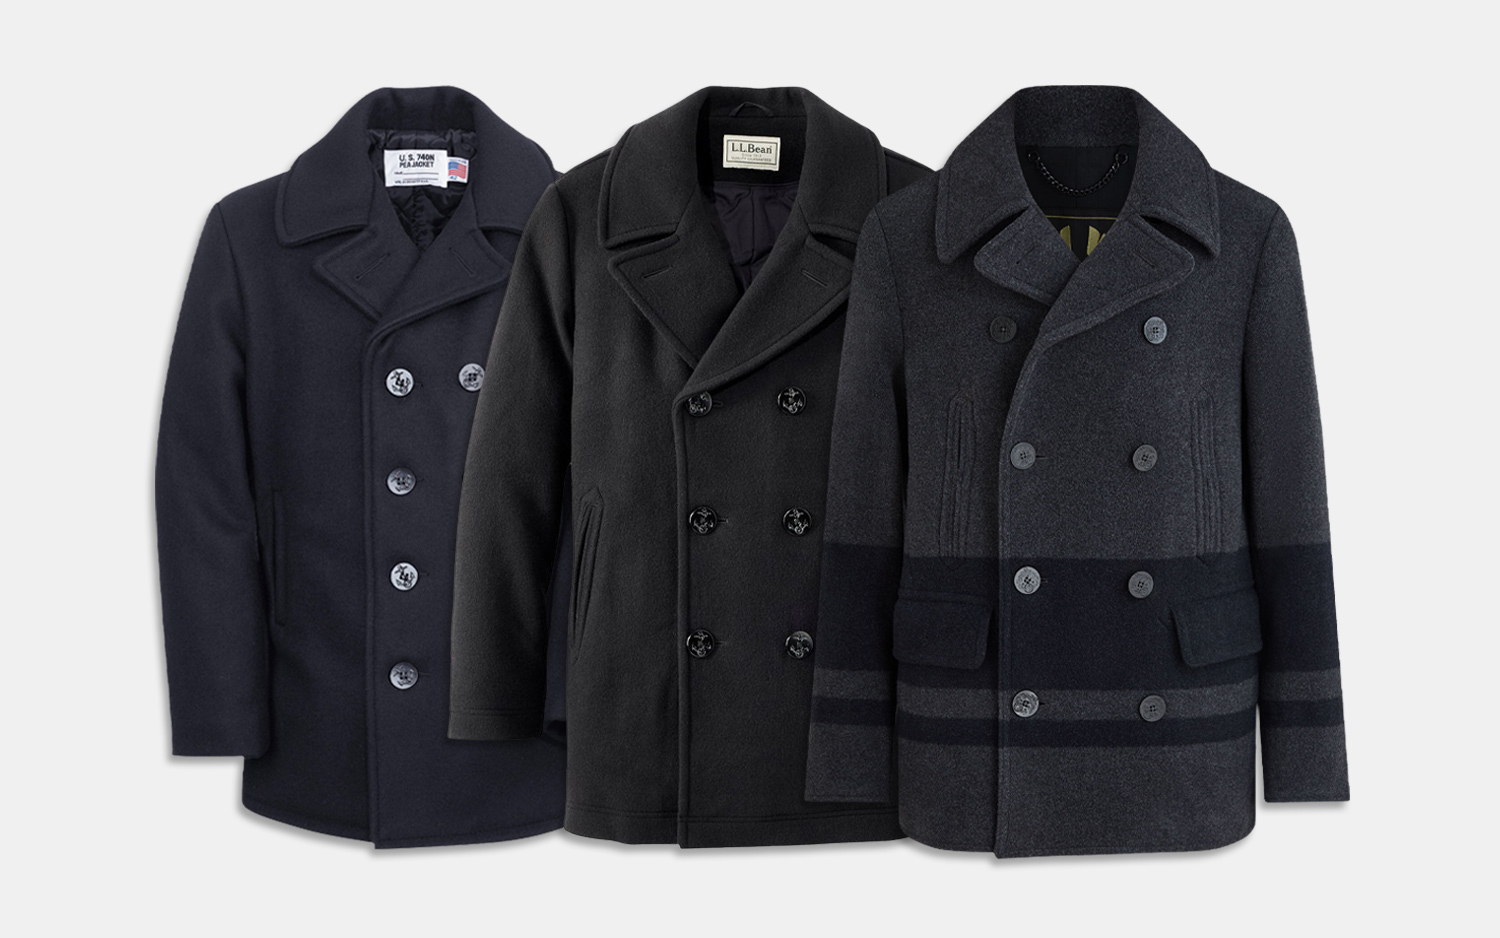 18 best peacoats for men